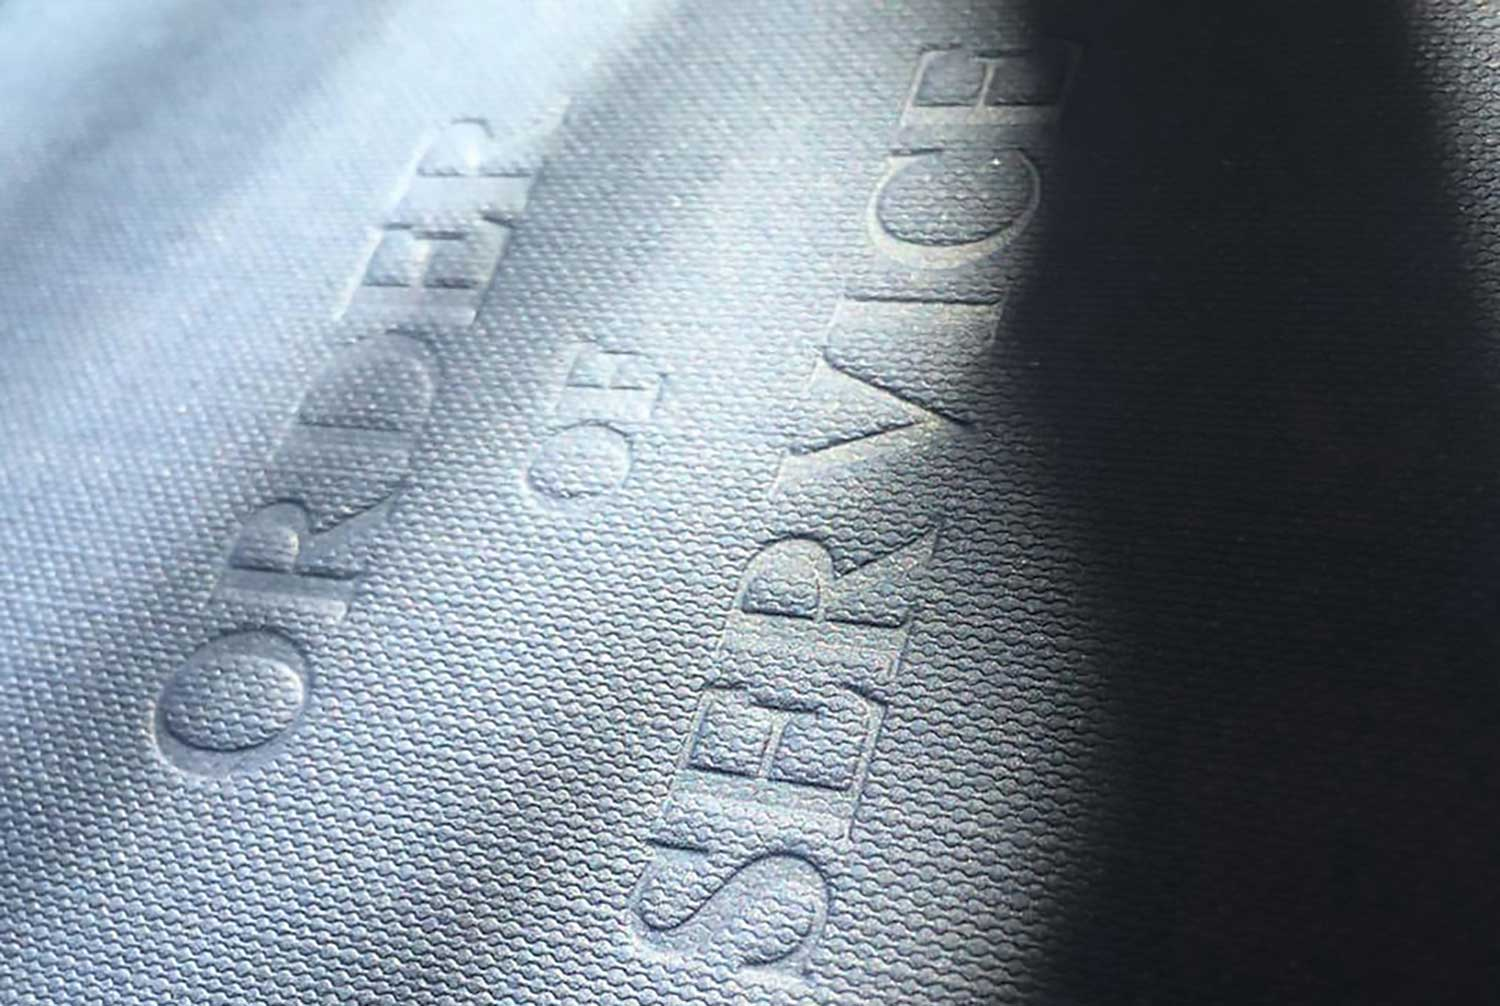 A particularly angled image of a letterpress order of service cover. WIth order of service embossed into the cover.